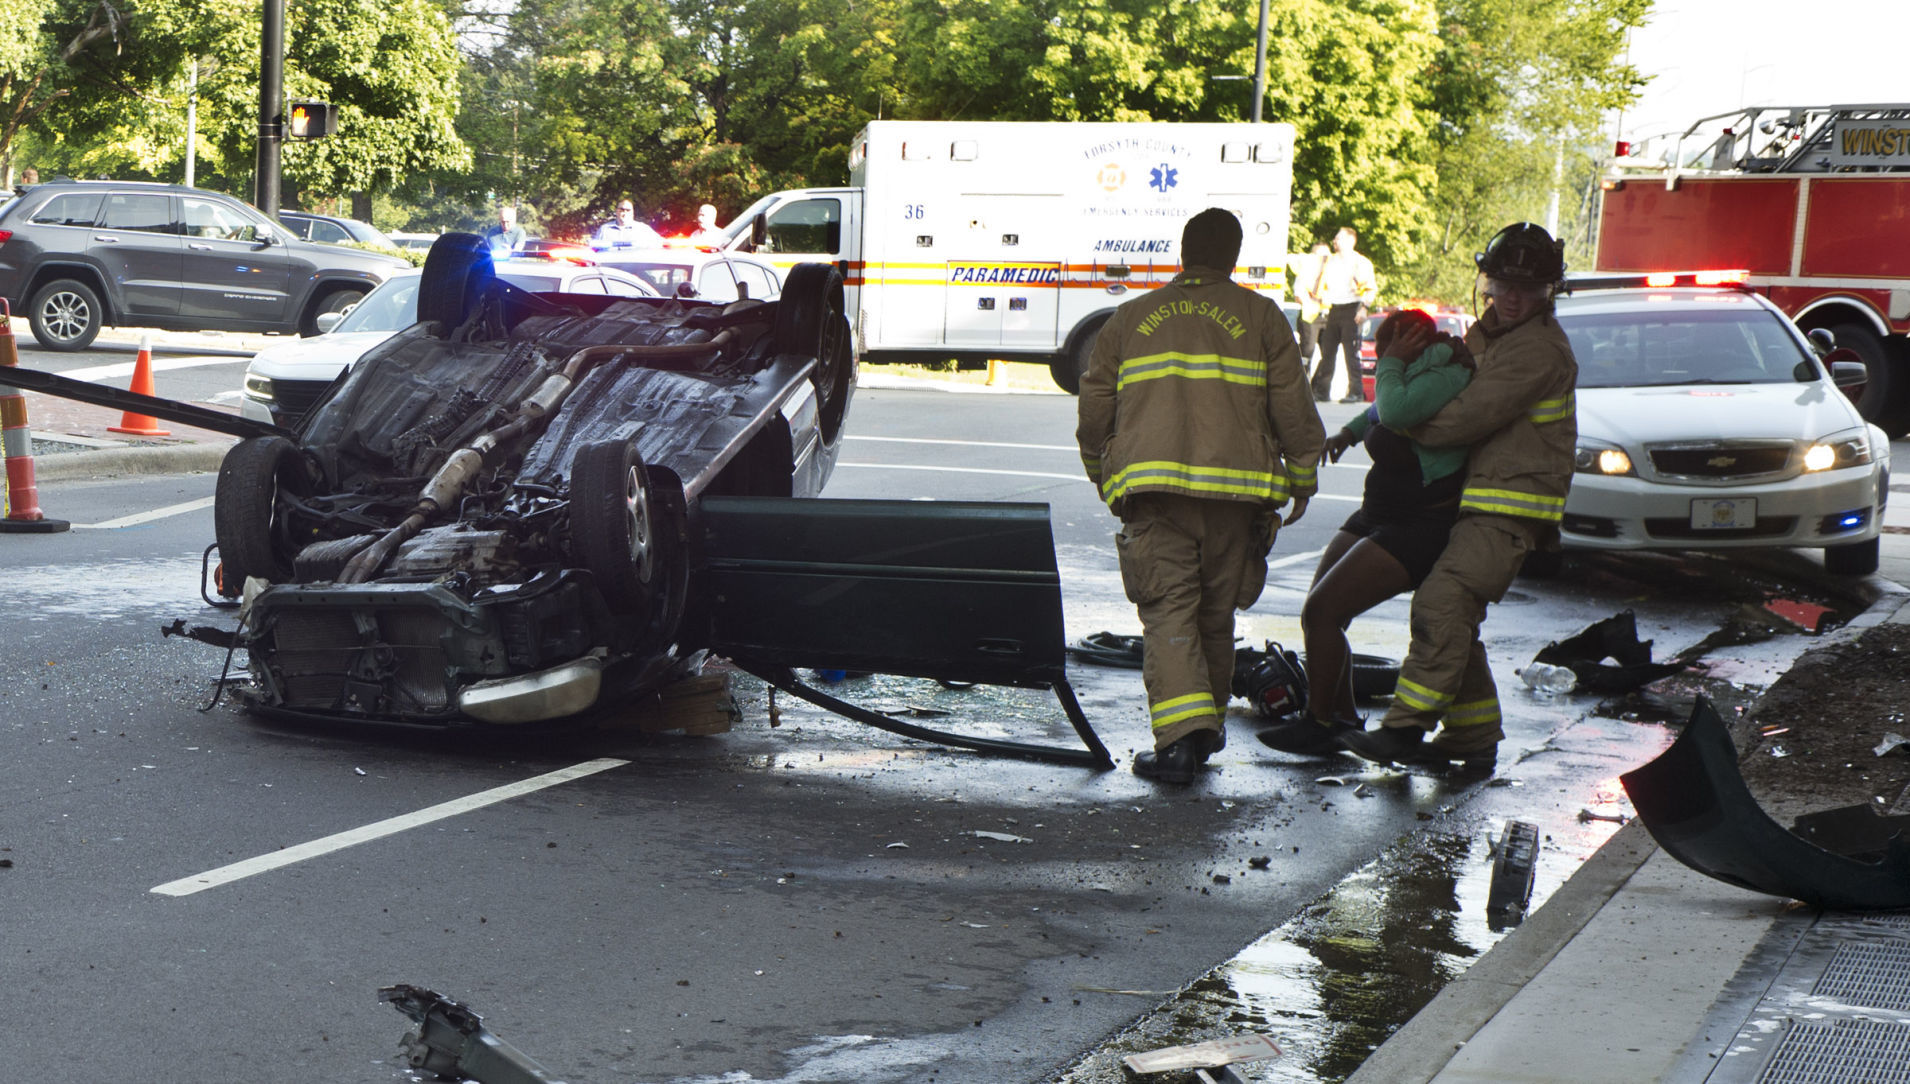 Roll-over crash closes Marshall Street in downtown Winston-Salem | Winston Salem Journal